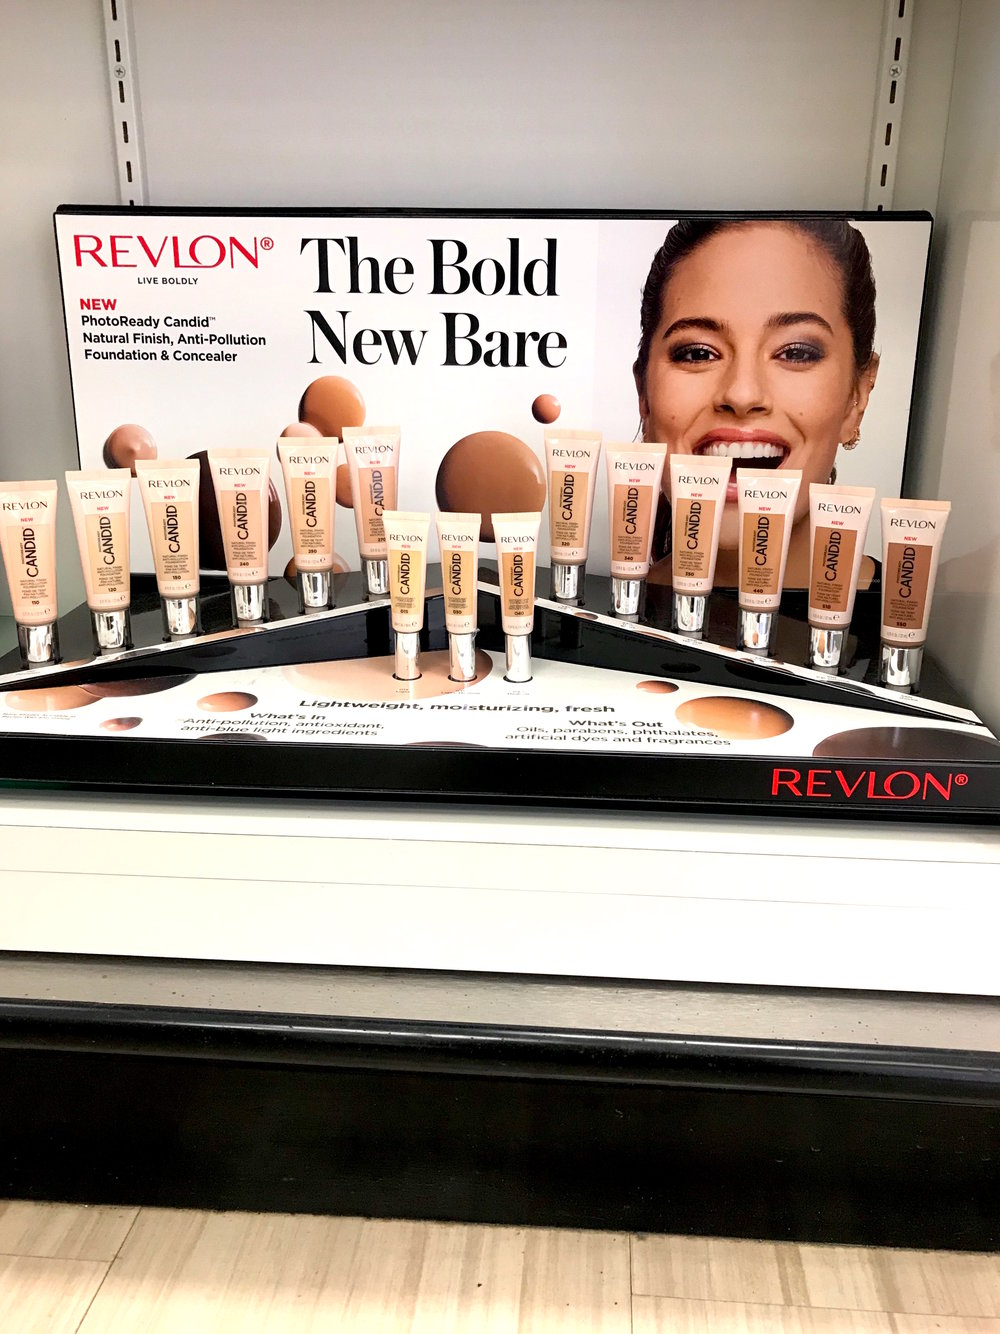 revlon photo ready candid rite aid.jpg